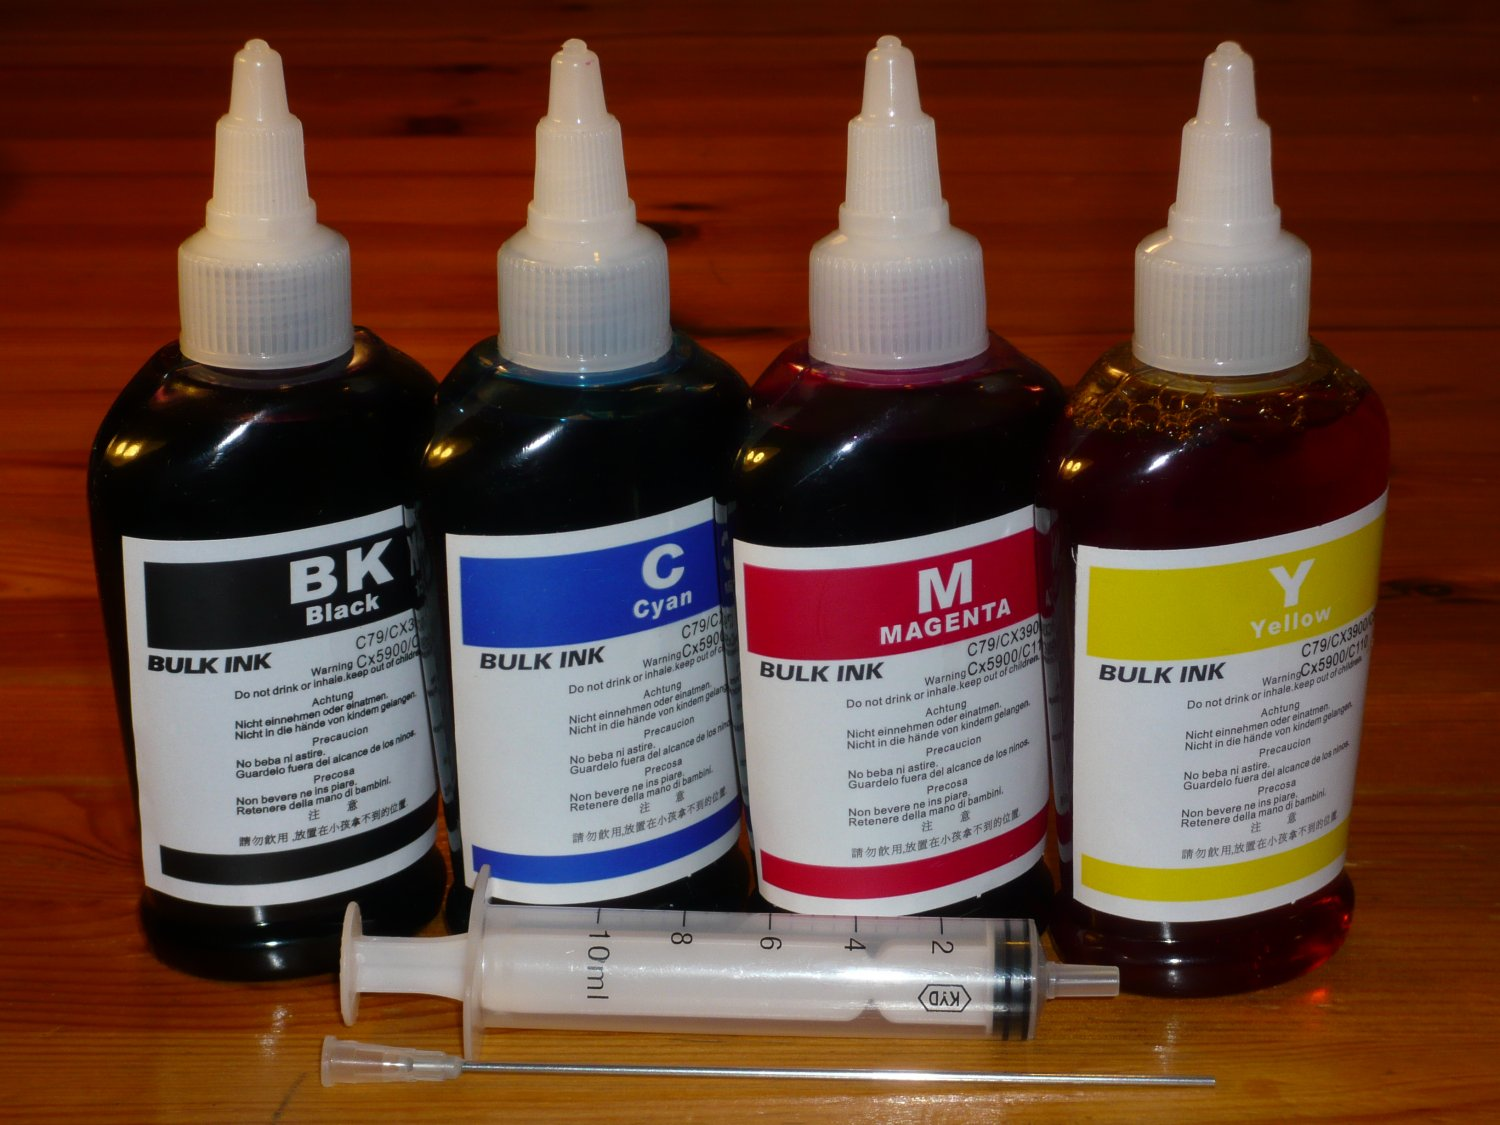 Bulk refill ink for EPSON, HP, BROTHER, CANON ink printer cartridge, 100ml x 4 bottles, total 400ml